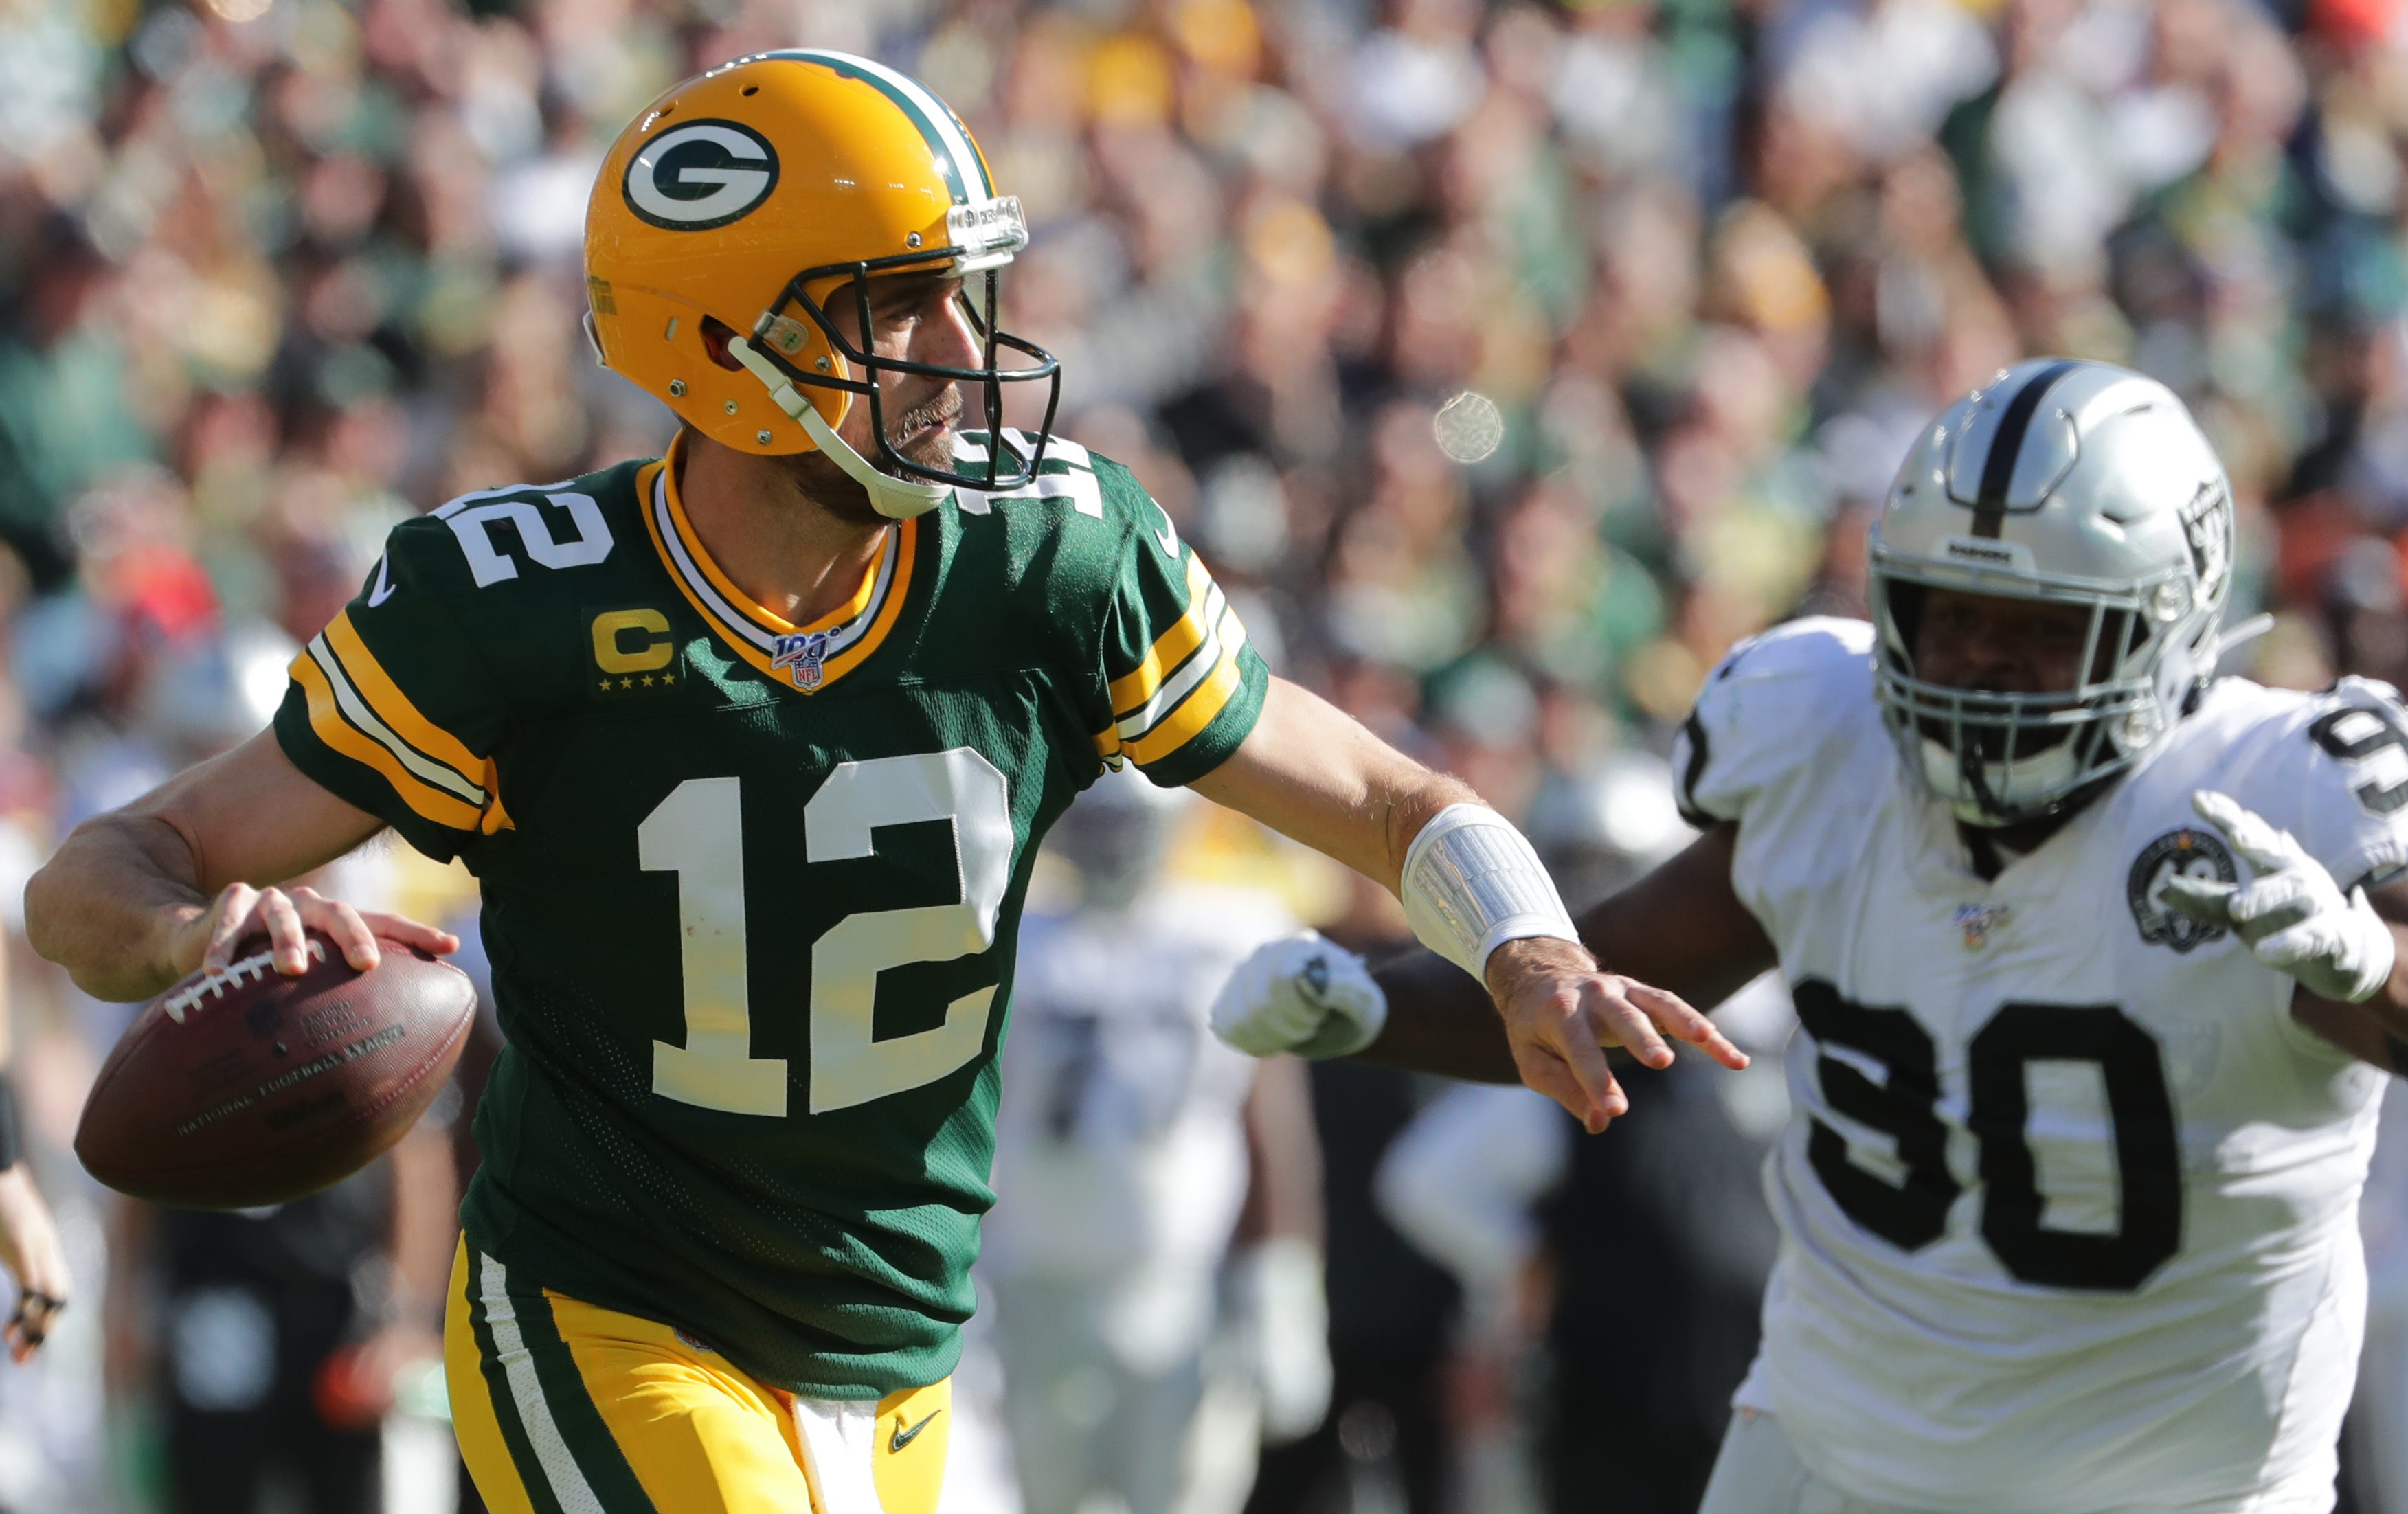 Aaron Rodgers plays at MVP level, earns first perfect passer rating for Packers